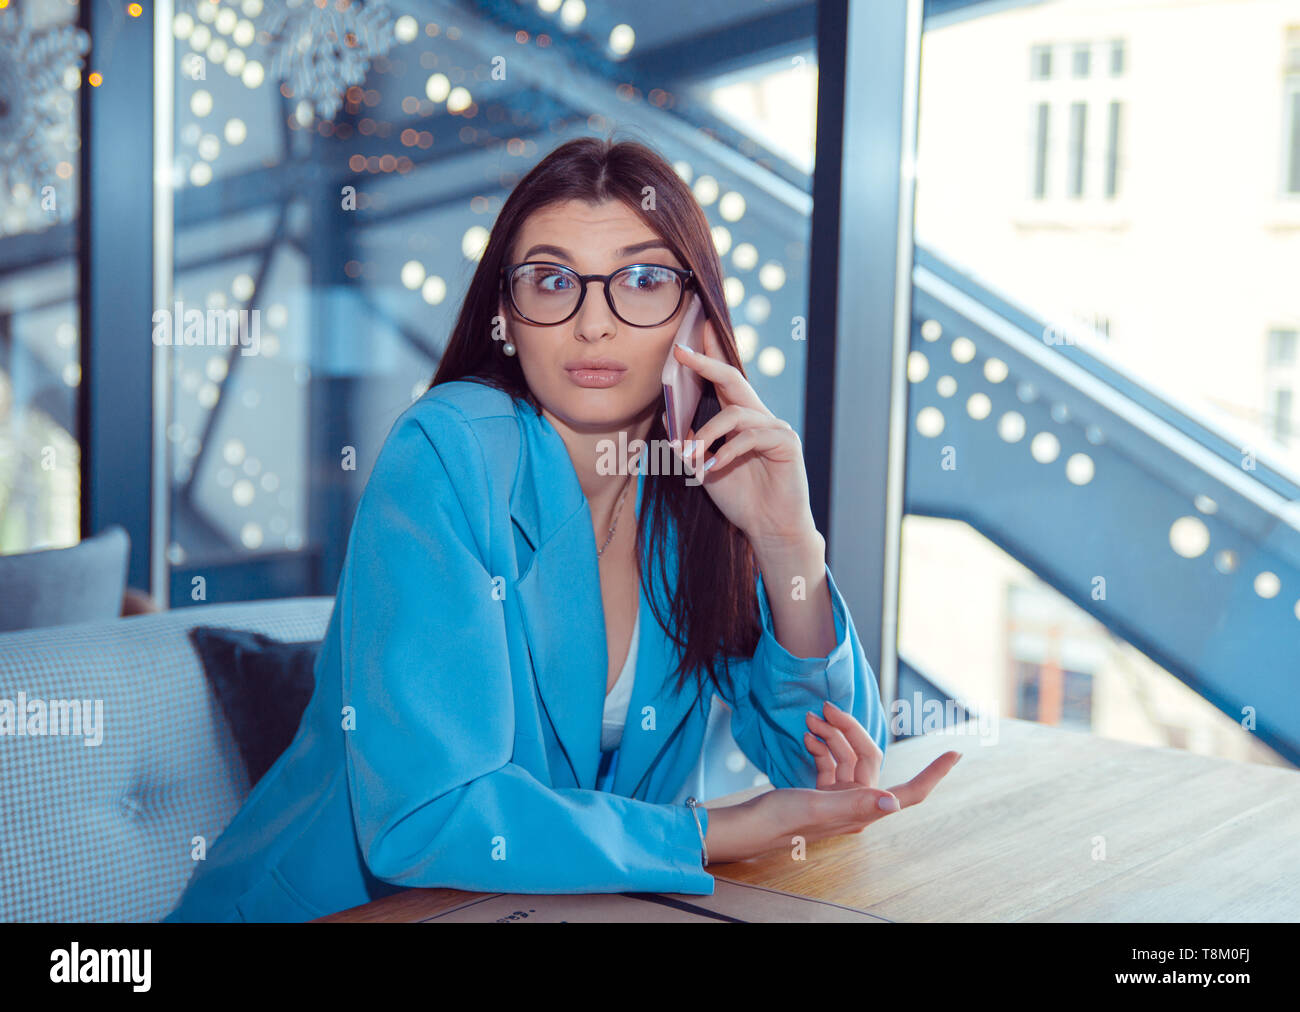 Closeup portrait of a beautiful woman shrugging shoulders puzzled while talking at phone. Hispanic girl wearing formal blue suit sitting at table in c - Stock Image